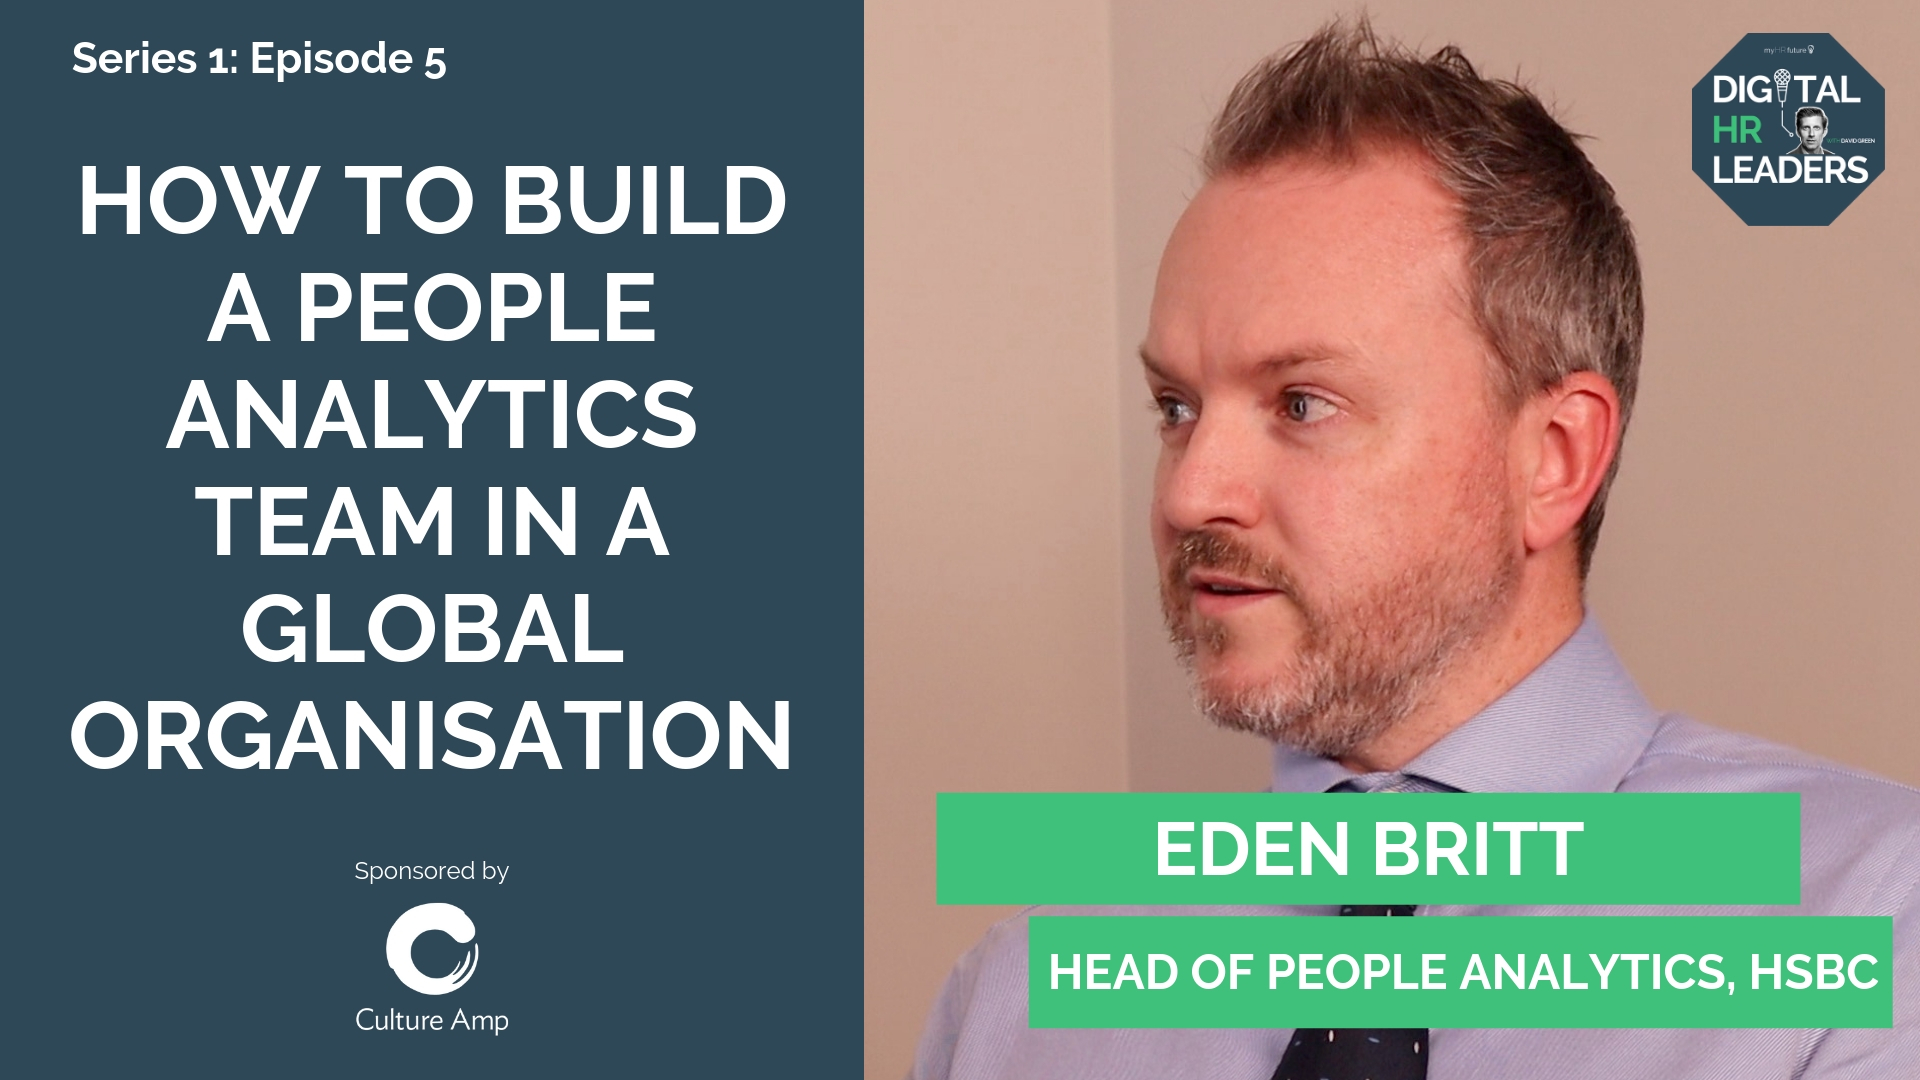 How to Build a People Analytics Team in a Global